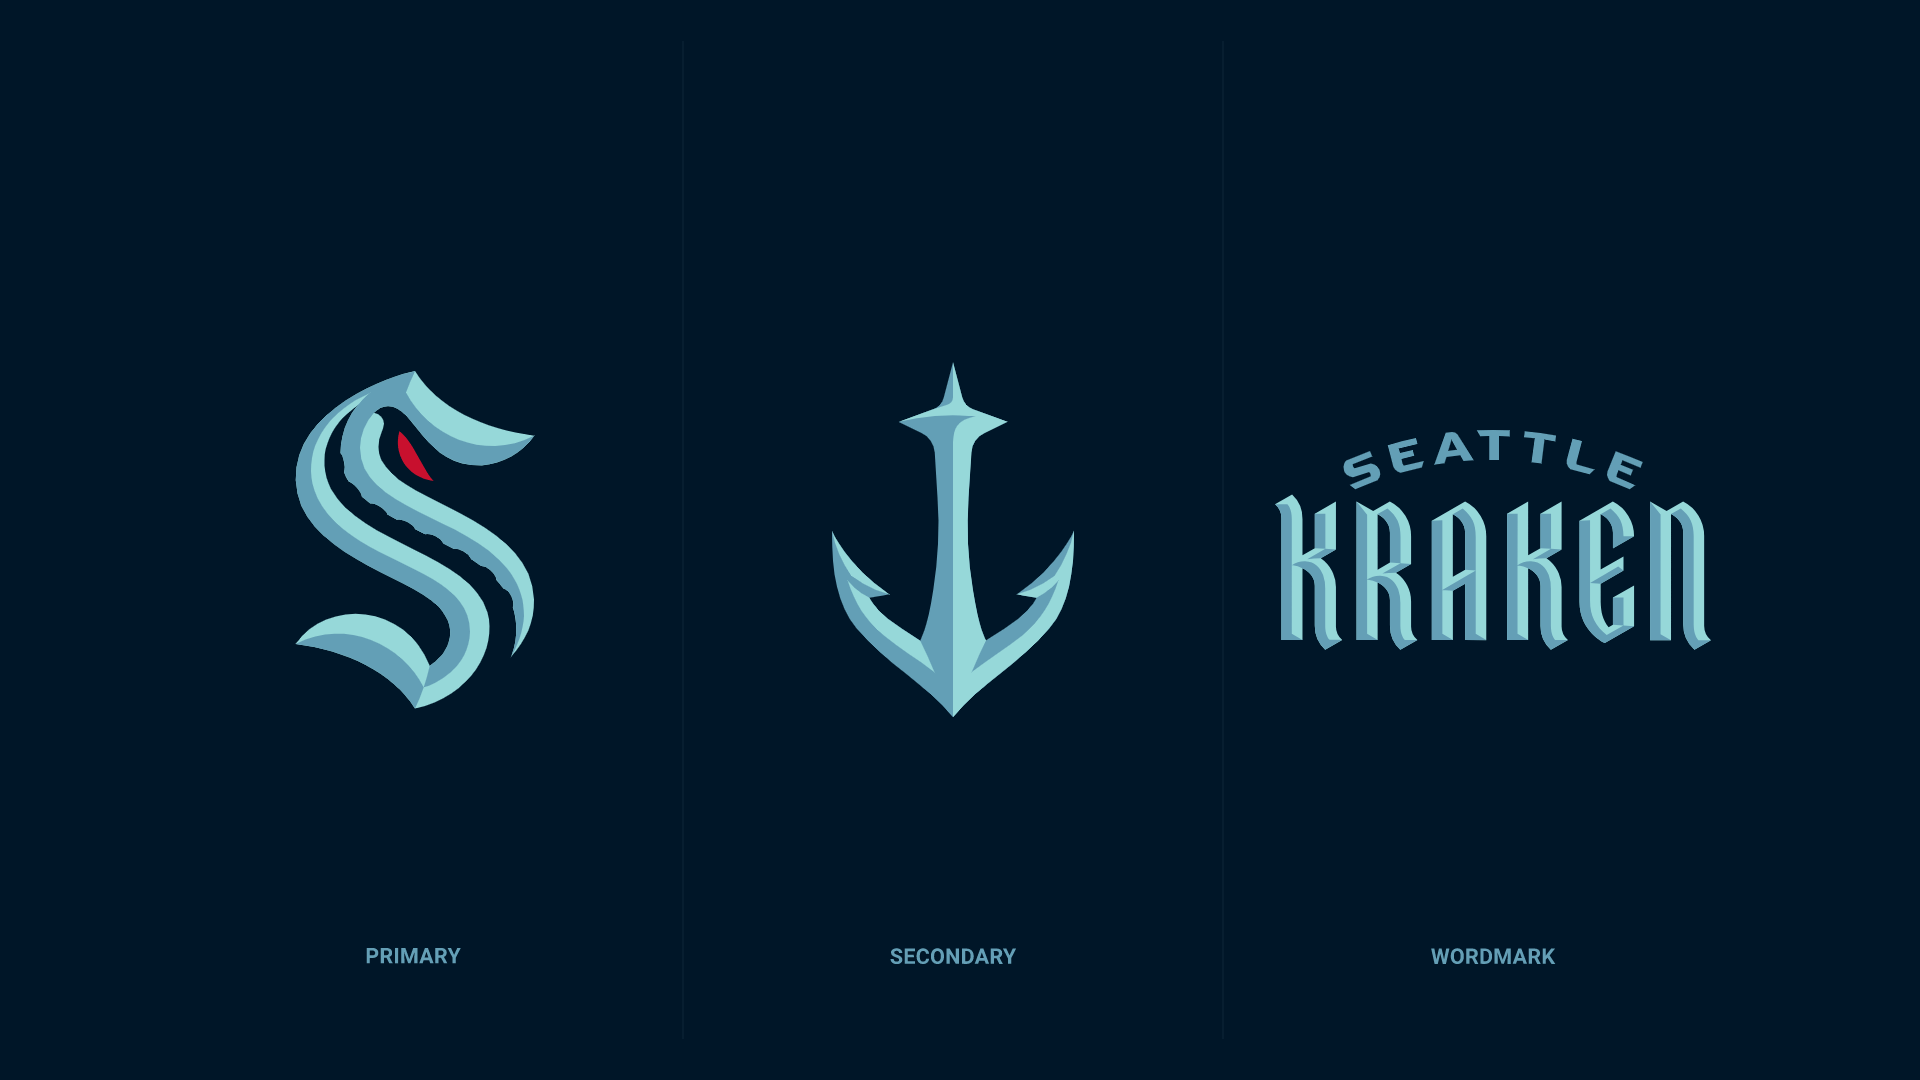 Brand New New Name And Logo For Seattle Kraken In 2020 Logo Design Inspiration Sports New Names Kraken